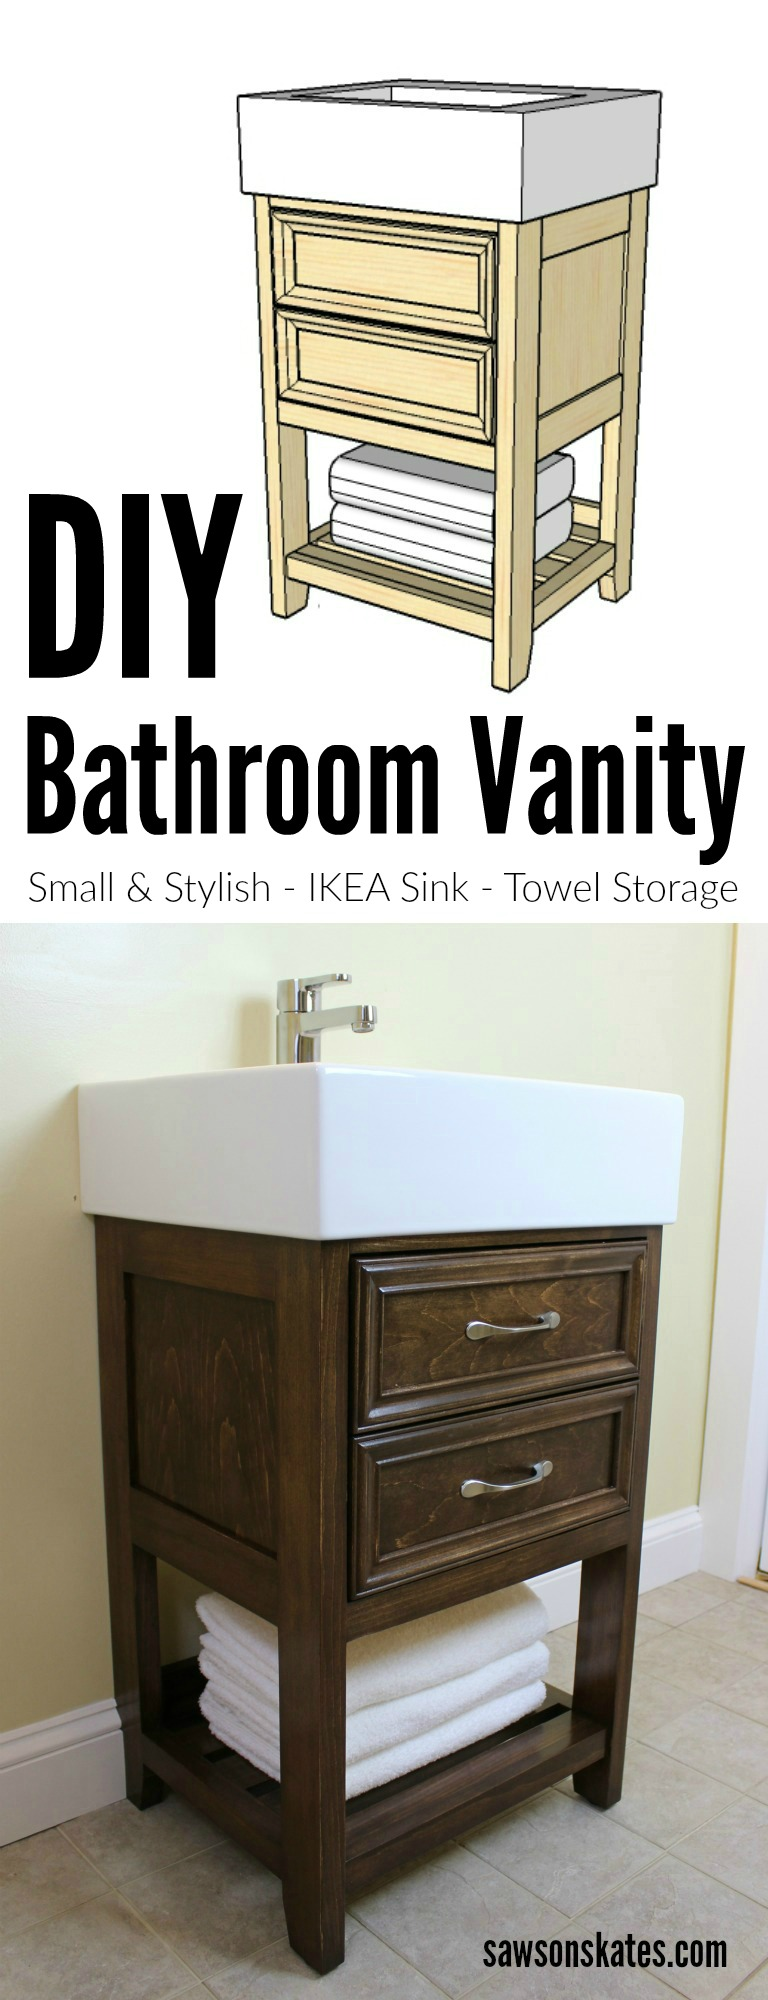 looking for small diy bathroom vanity ideas check out the plans for this diy vanity